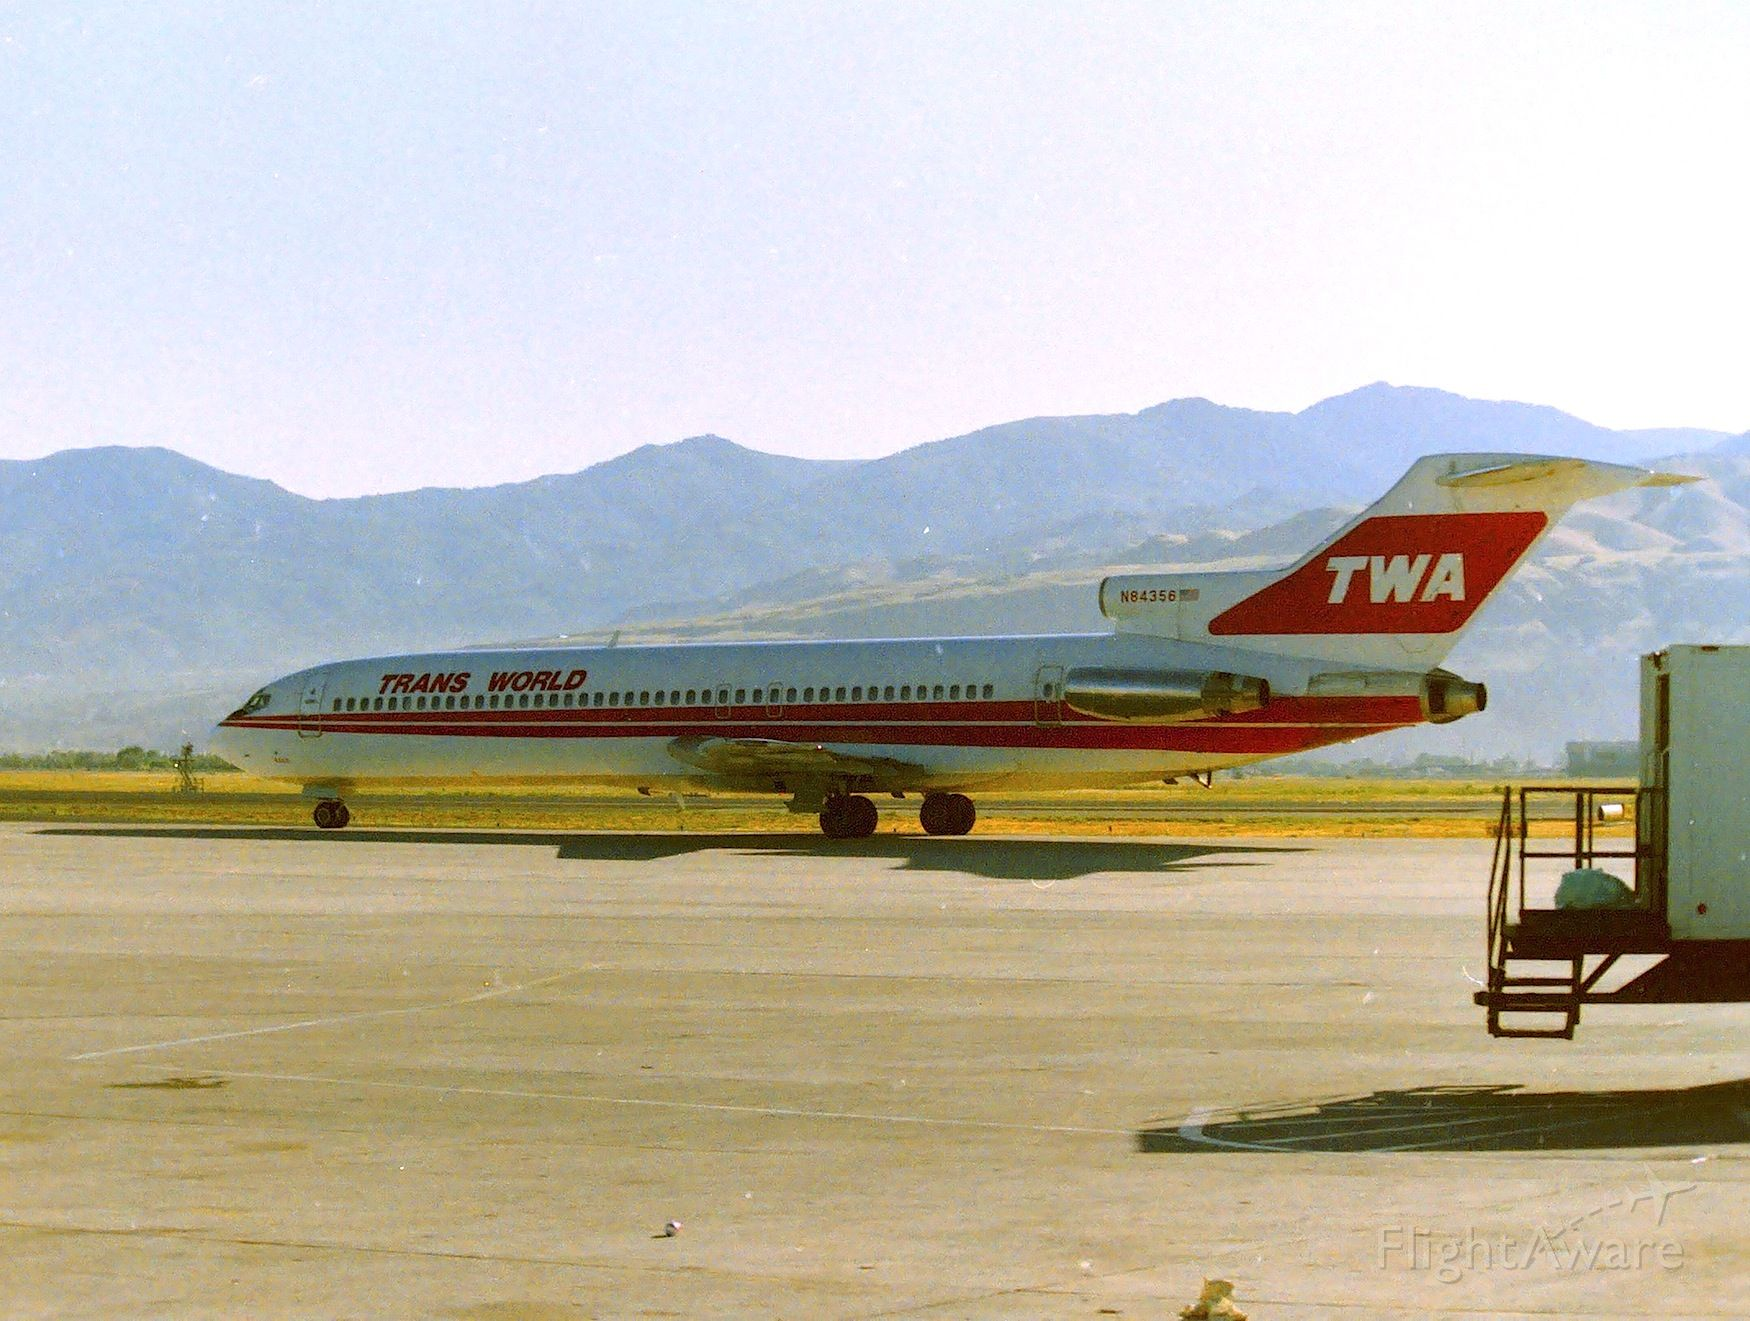 BOEING 727-200 (N84356) - KSLC - early up on a driving trip to Denver - 1988 or 89..a quick trip through the SLC terminal caught this TWA 727 headed for the main north-south departure runway for a probable trip to KSTL/STL St Louis MO. There was a Pan Am 727 and a Hawaiian Air DC-8 here getting ready to roll also..........if only I had more time!